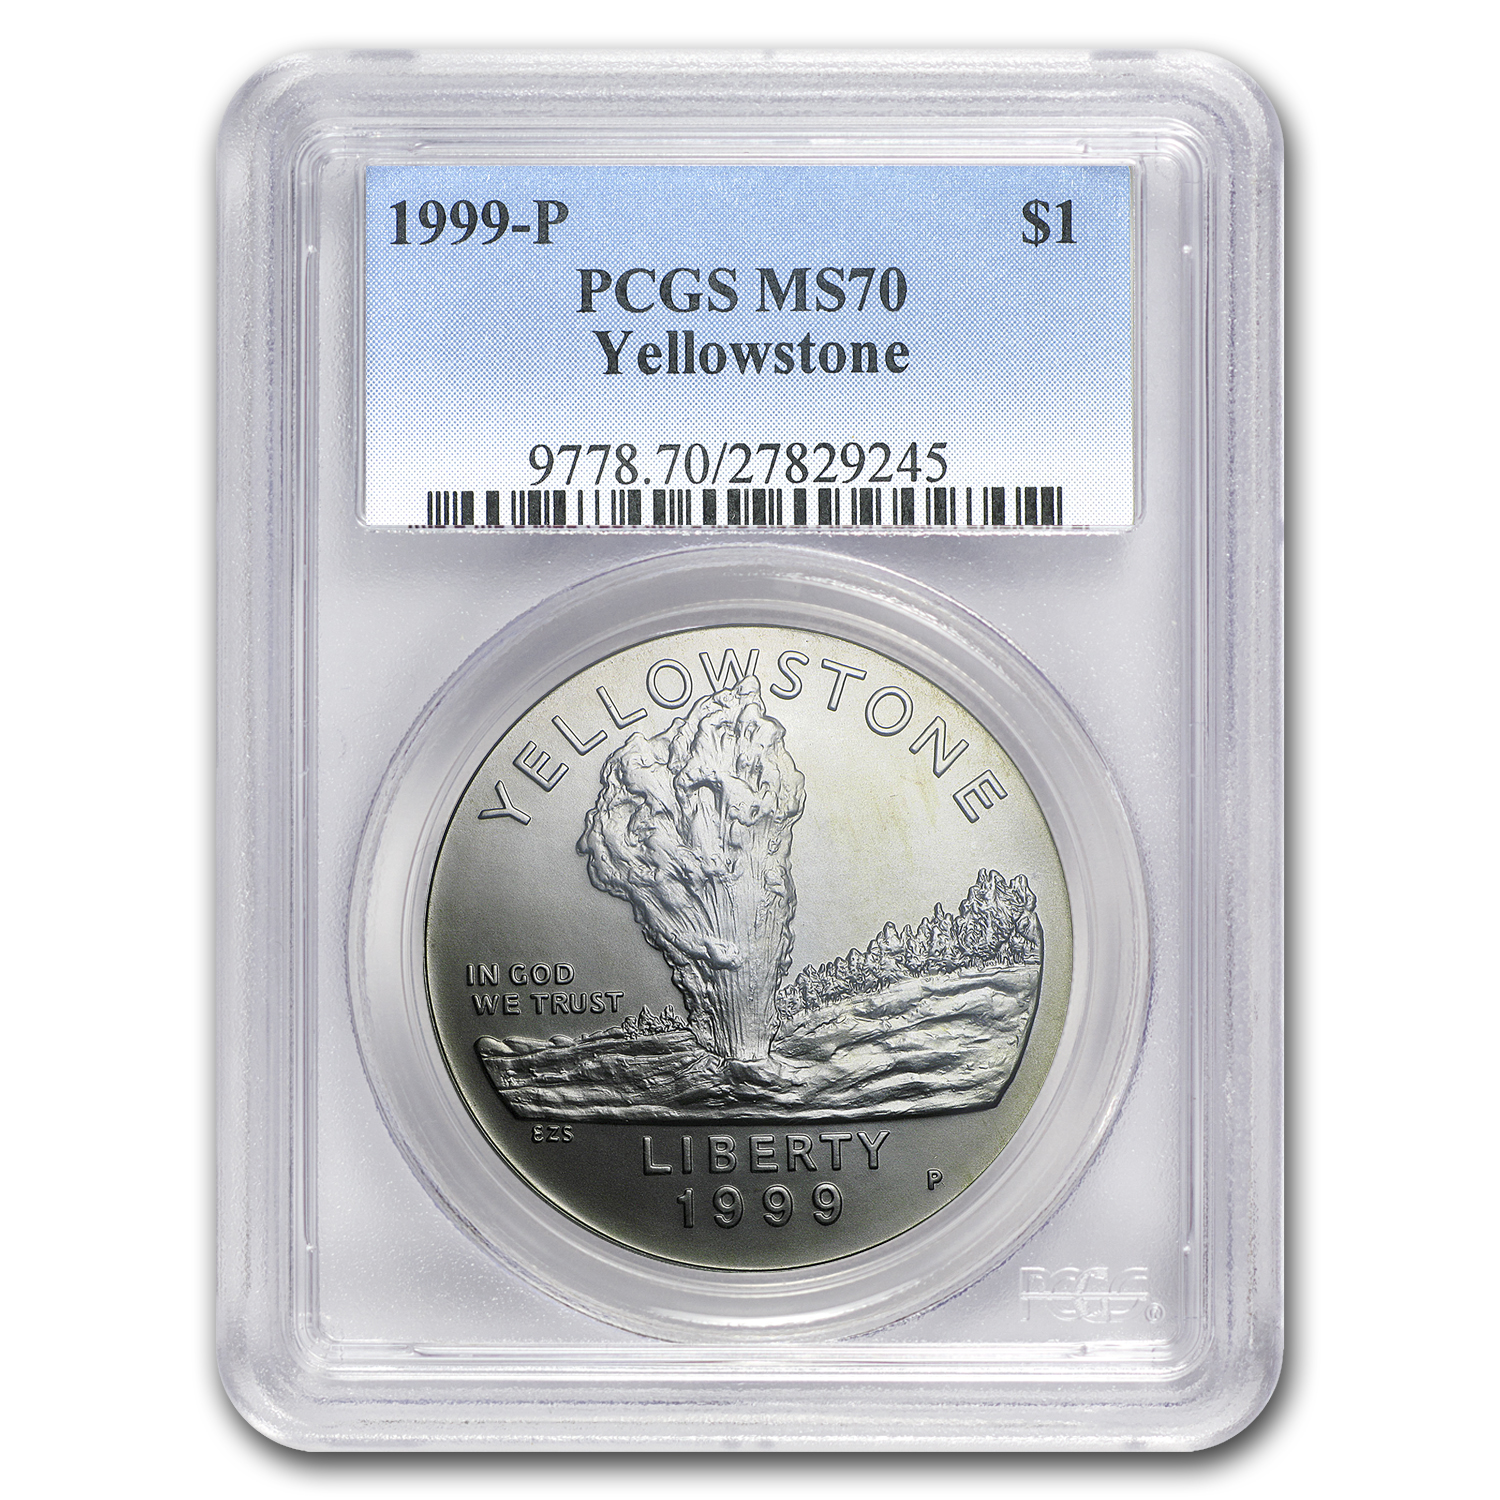 1999-P Yellowstone Park $1 Silver Commemorative - MS-70 PCGS